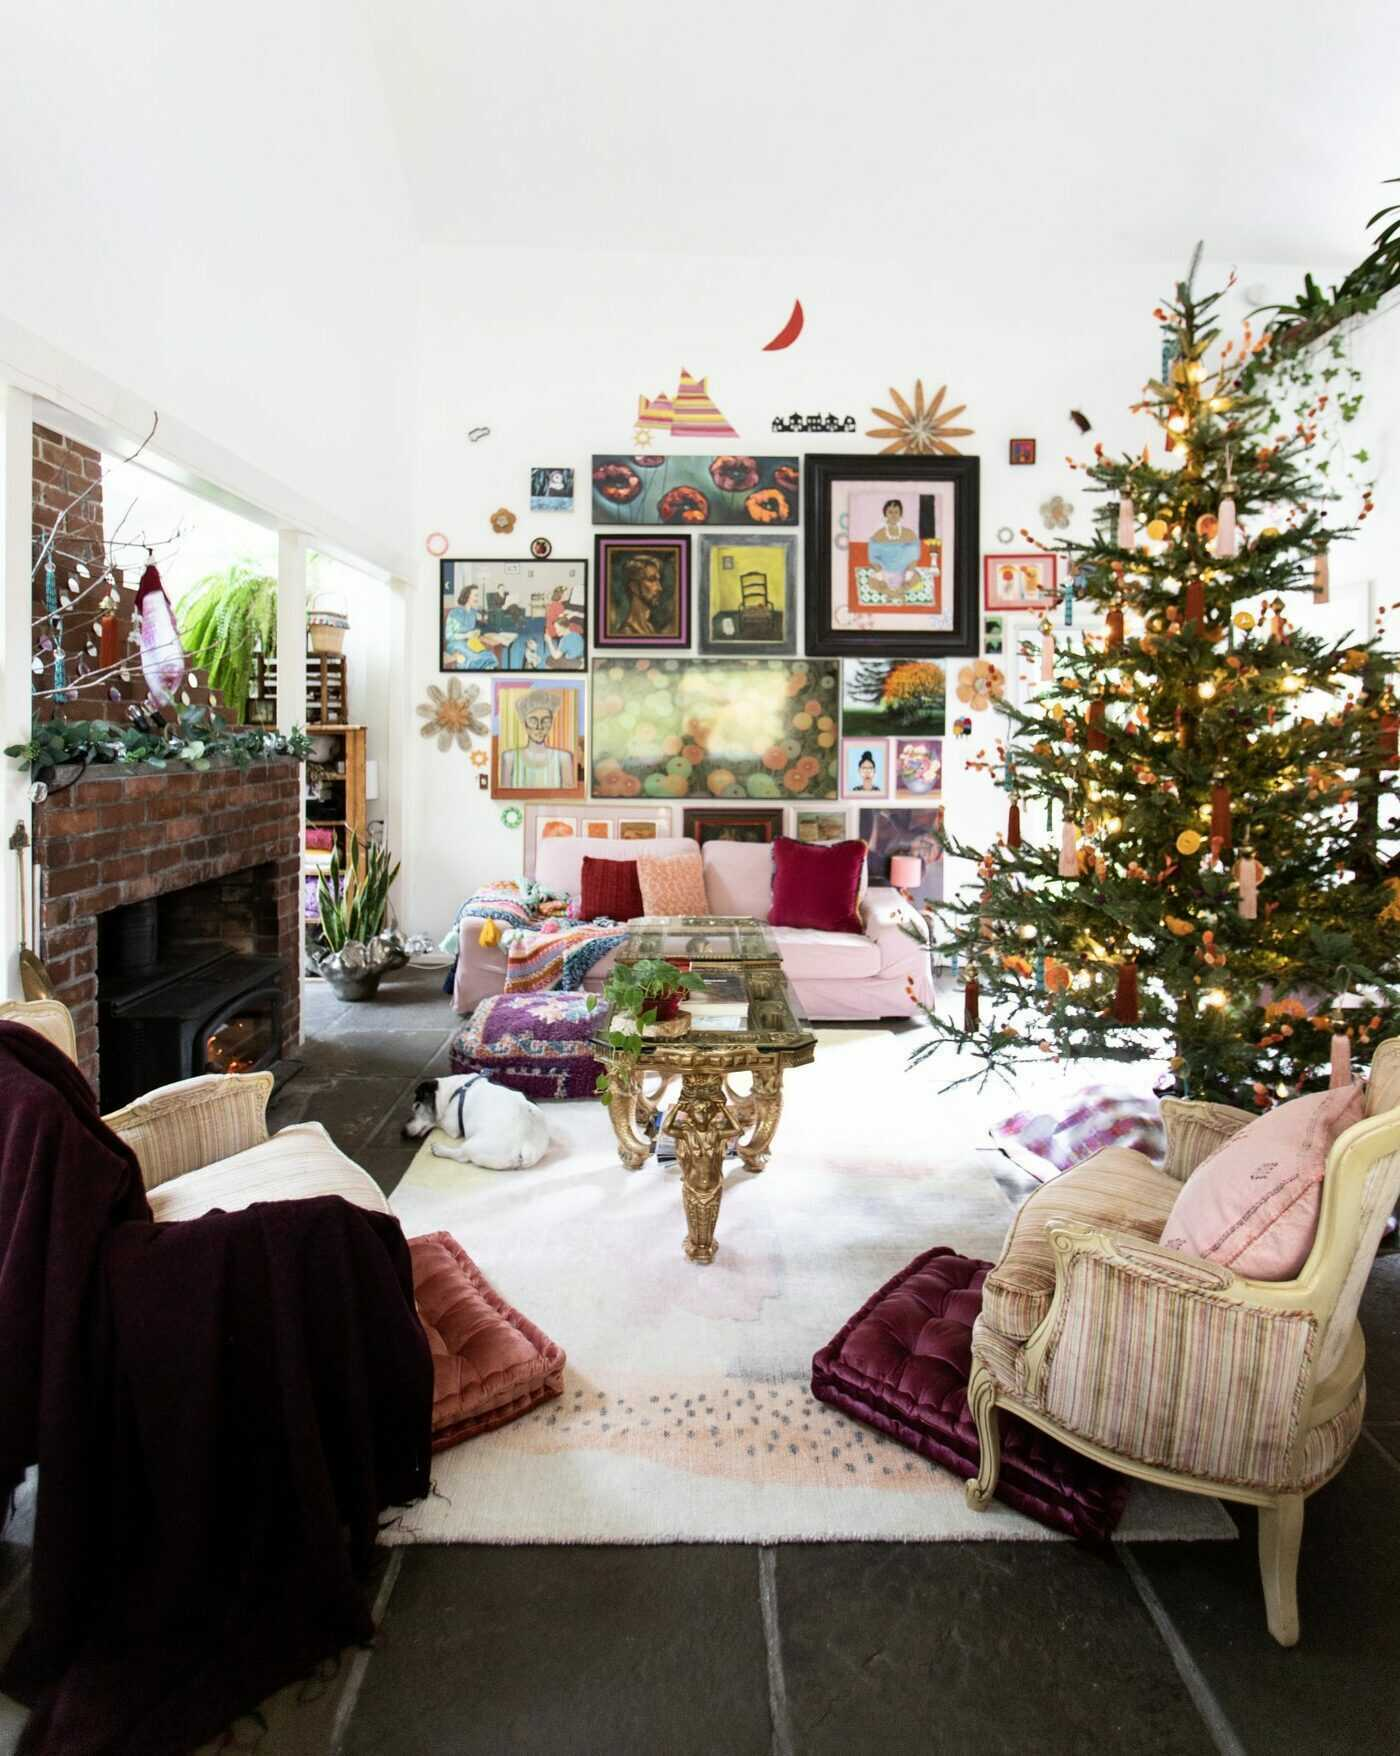 It's a very down to earth Christmas with owner and interior designer of Au Petit Salon Ginny Stalker. She shows all the fun and unexpected ways to bring color, texture, and patterns into the home for the holidays.